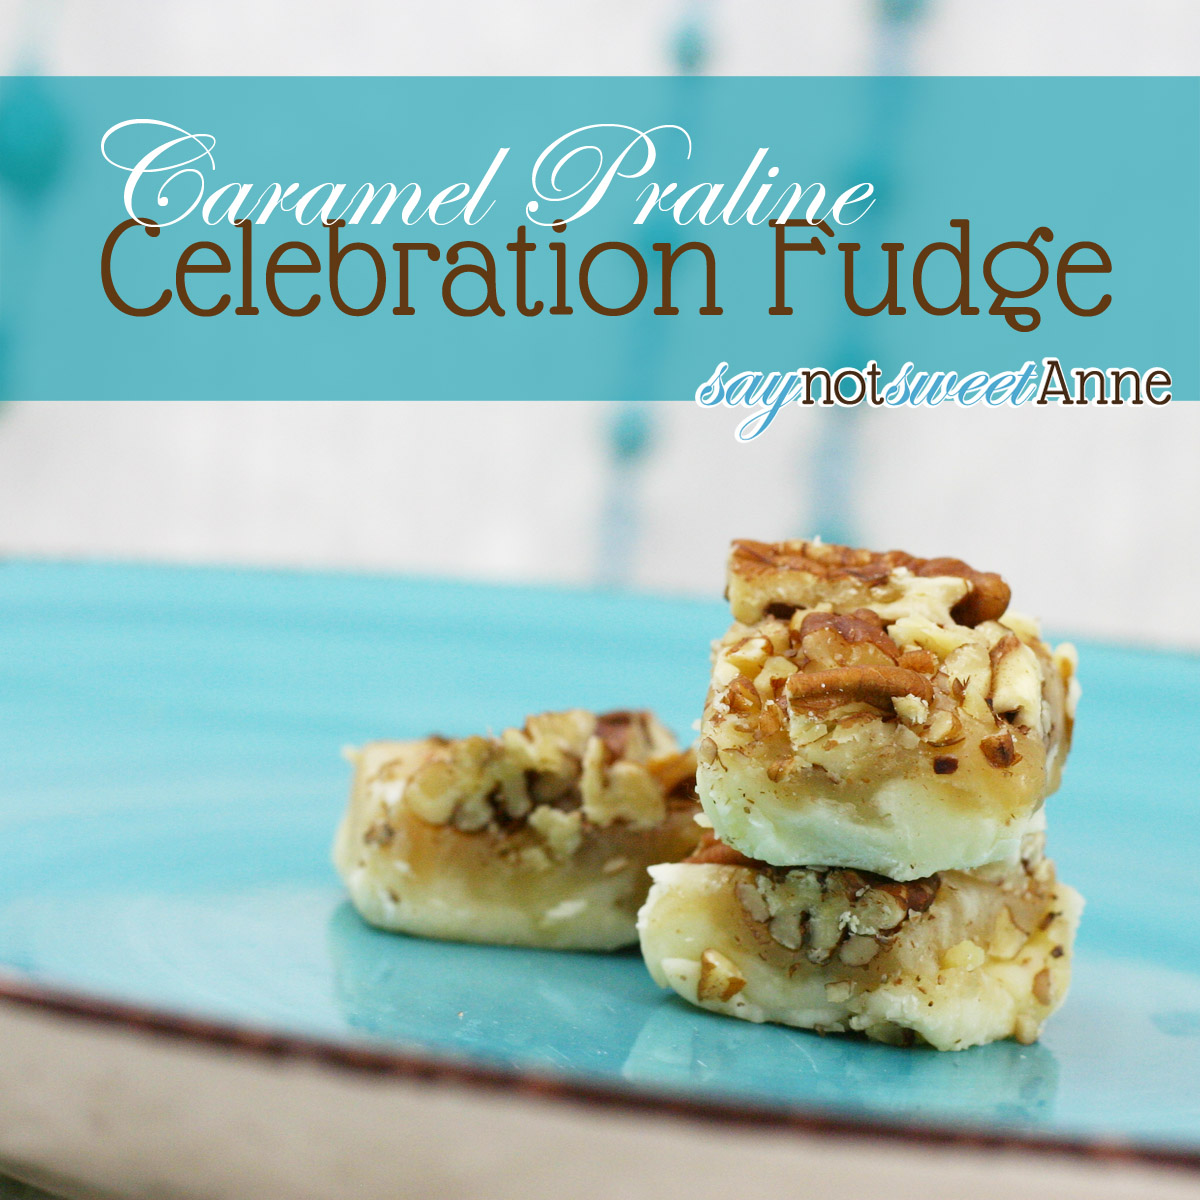 Caramel Praline Celebration Fudge at SayNotSweetAnne.com